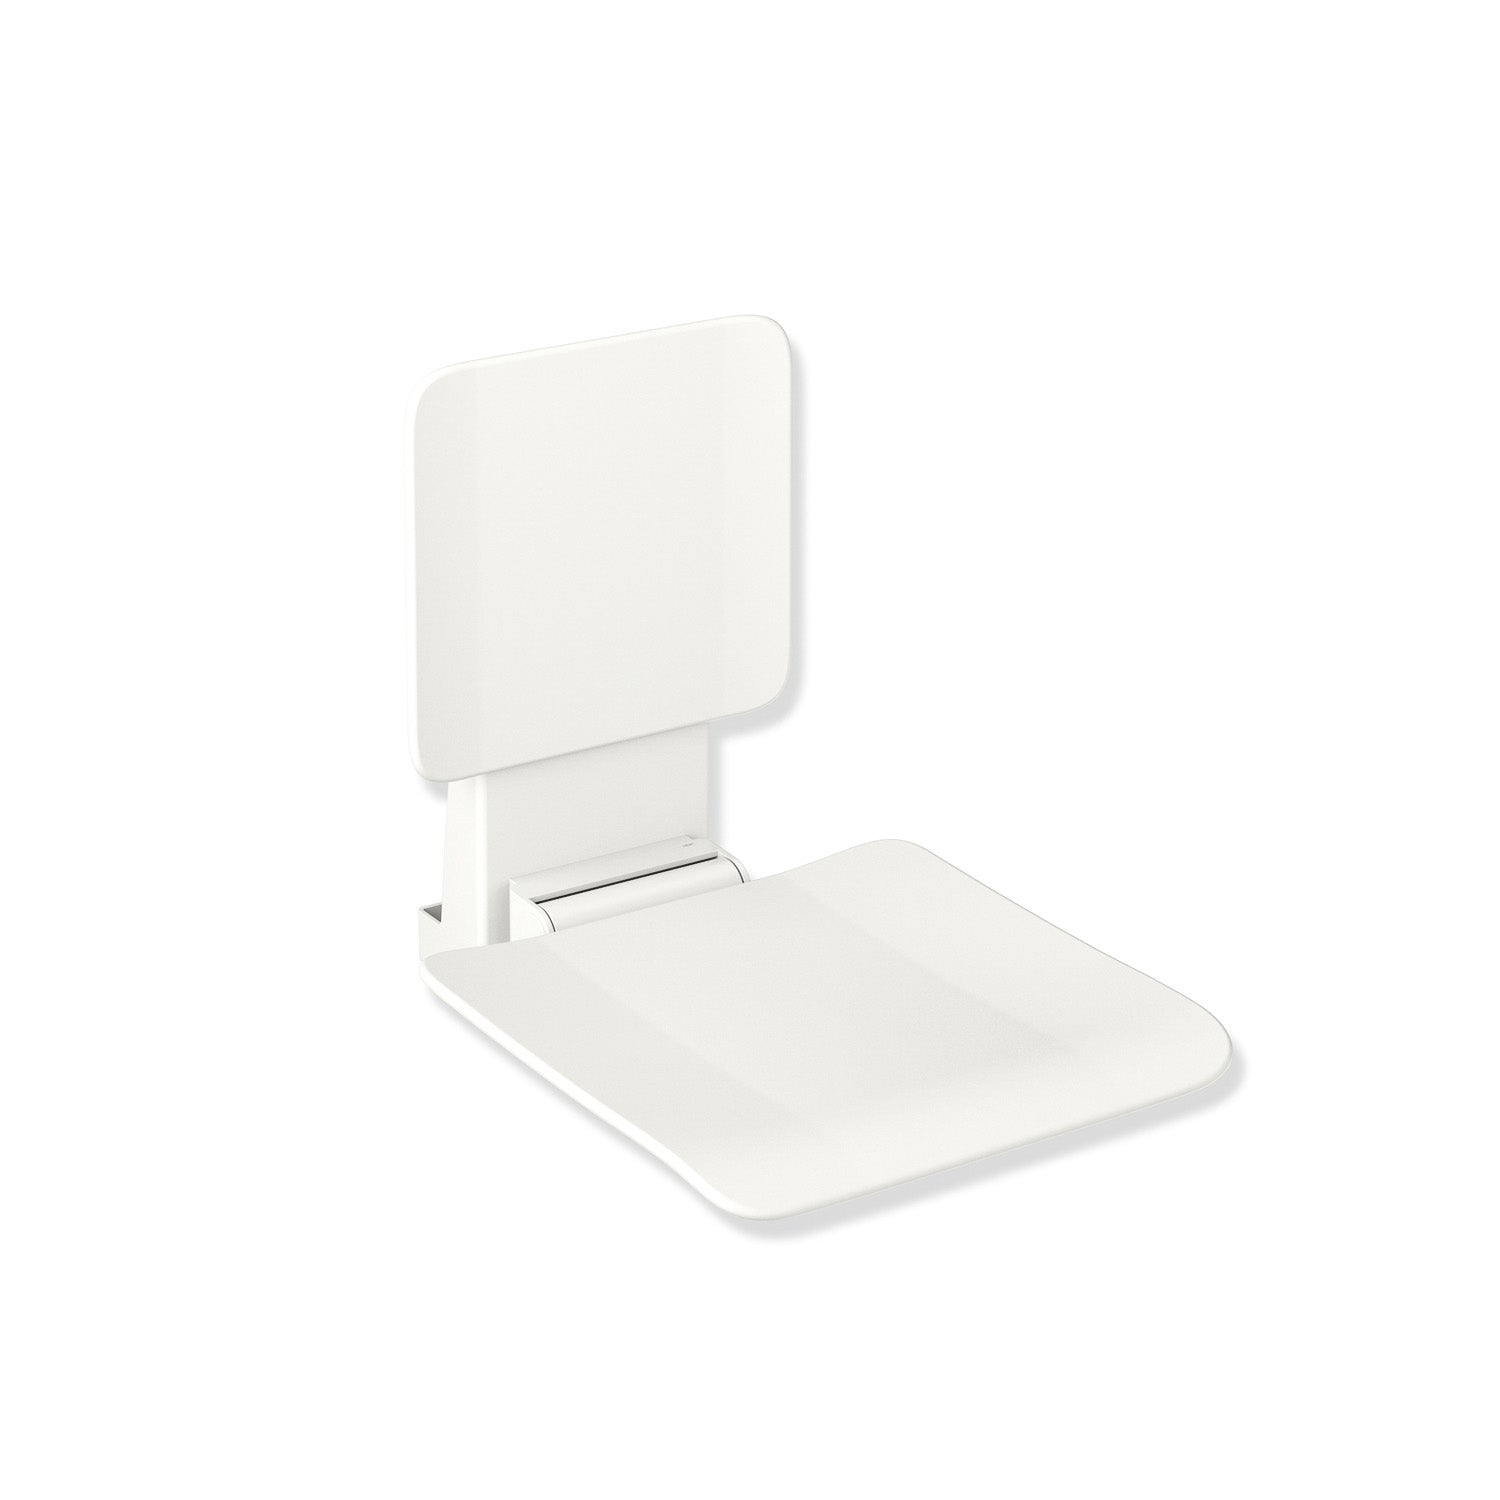 650mm Freestyle Hanging Seat with a backrest and a white finish on a white background